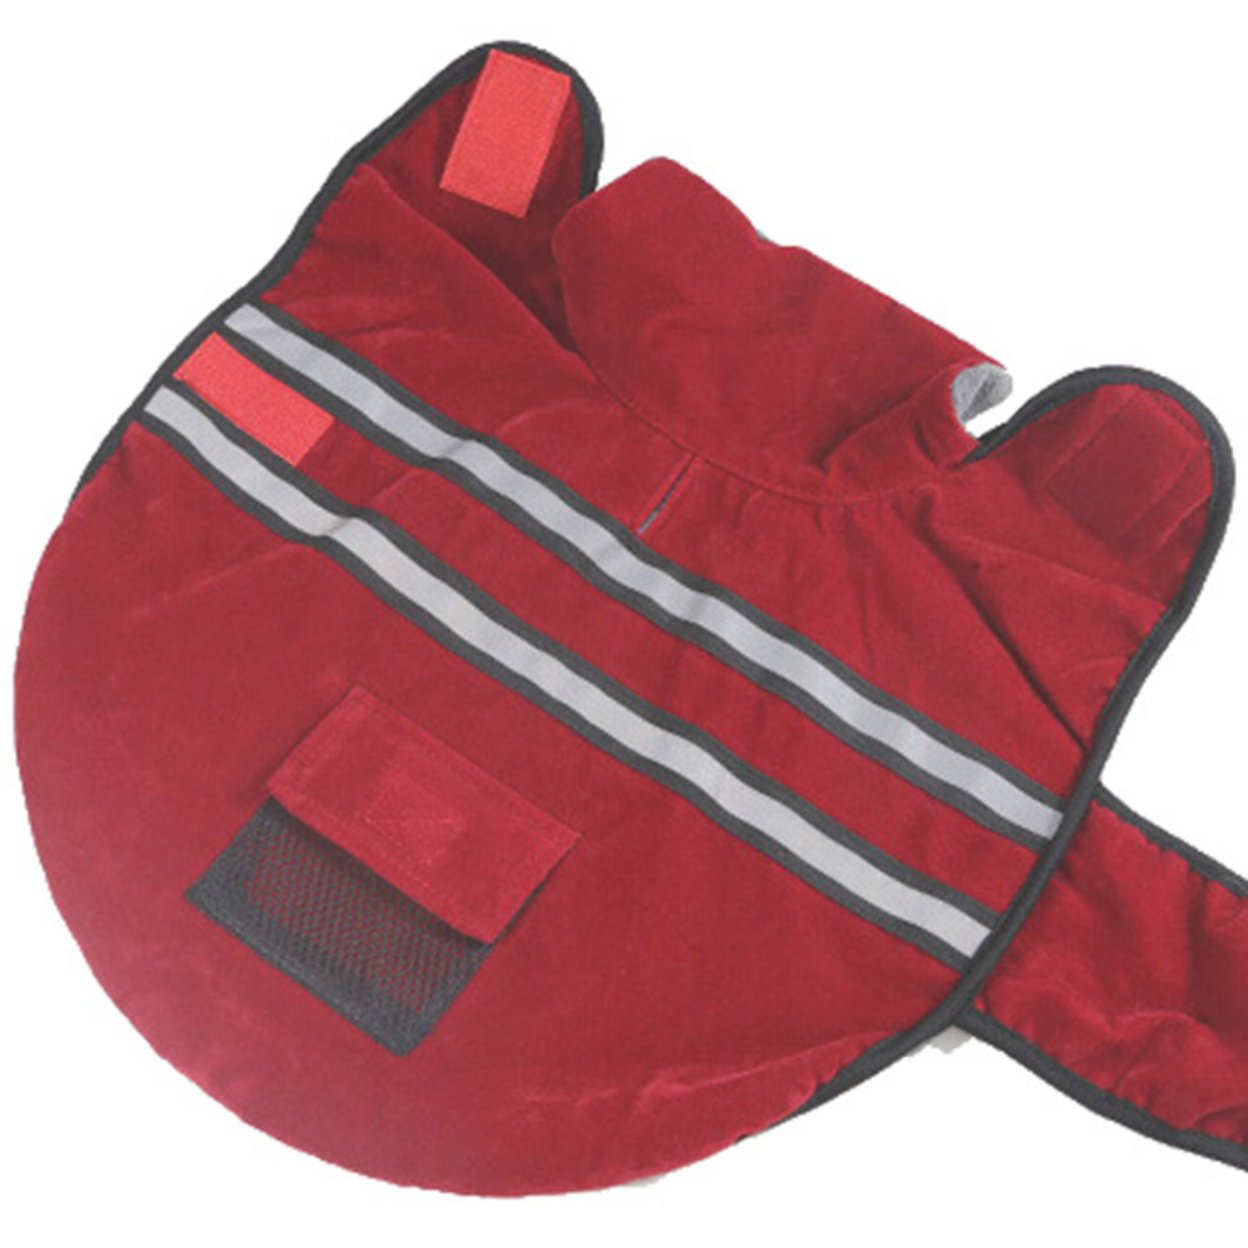 SCT Reflective Dog Jacket Winter Pet Protect Coat Large Red - l 59c4be362a00e458ee098f3e